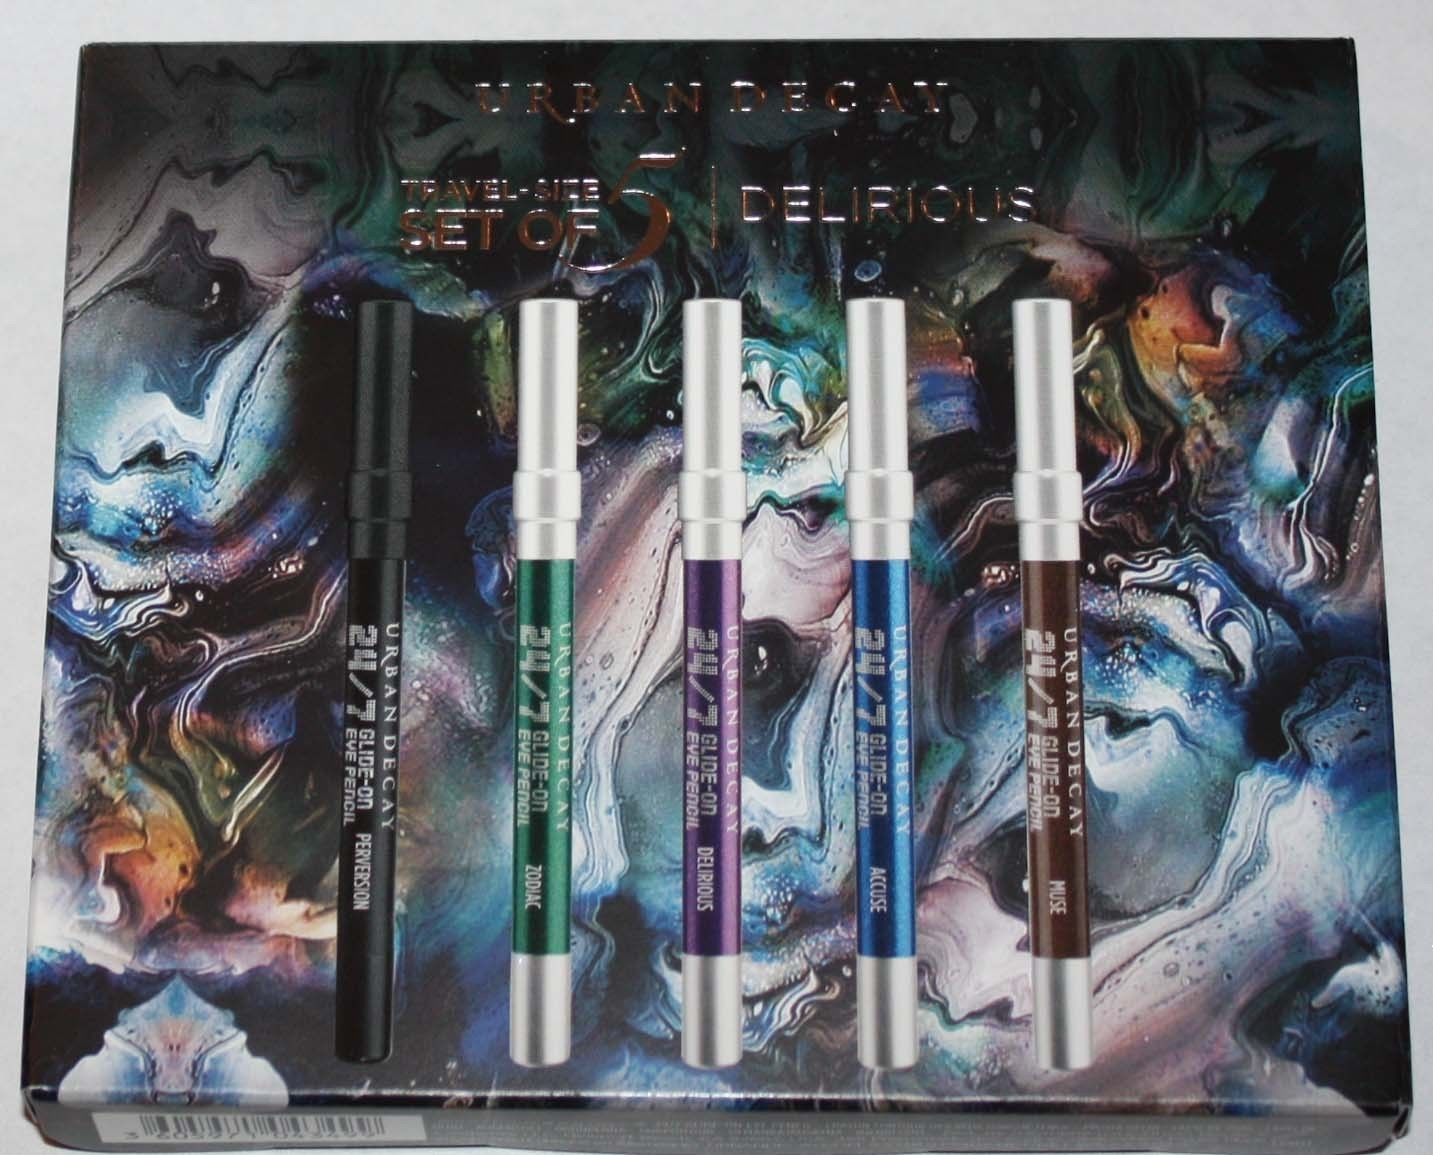 Urban Decay Delirious 5 Travel-Size Waterproof 24/7 Glide-On Eye Pencil Set